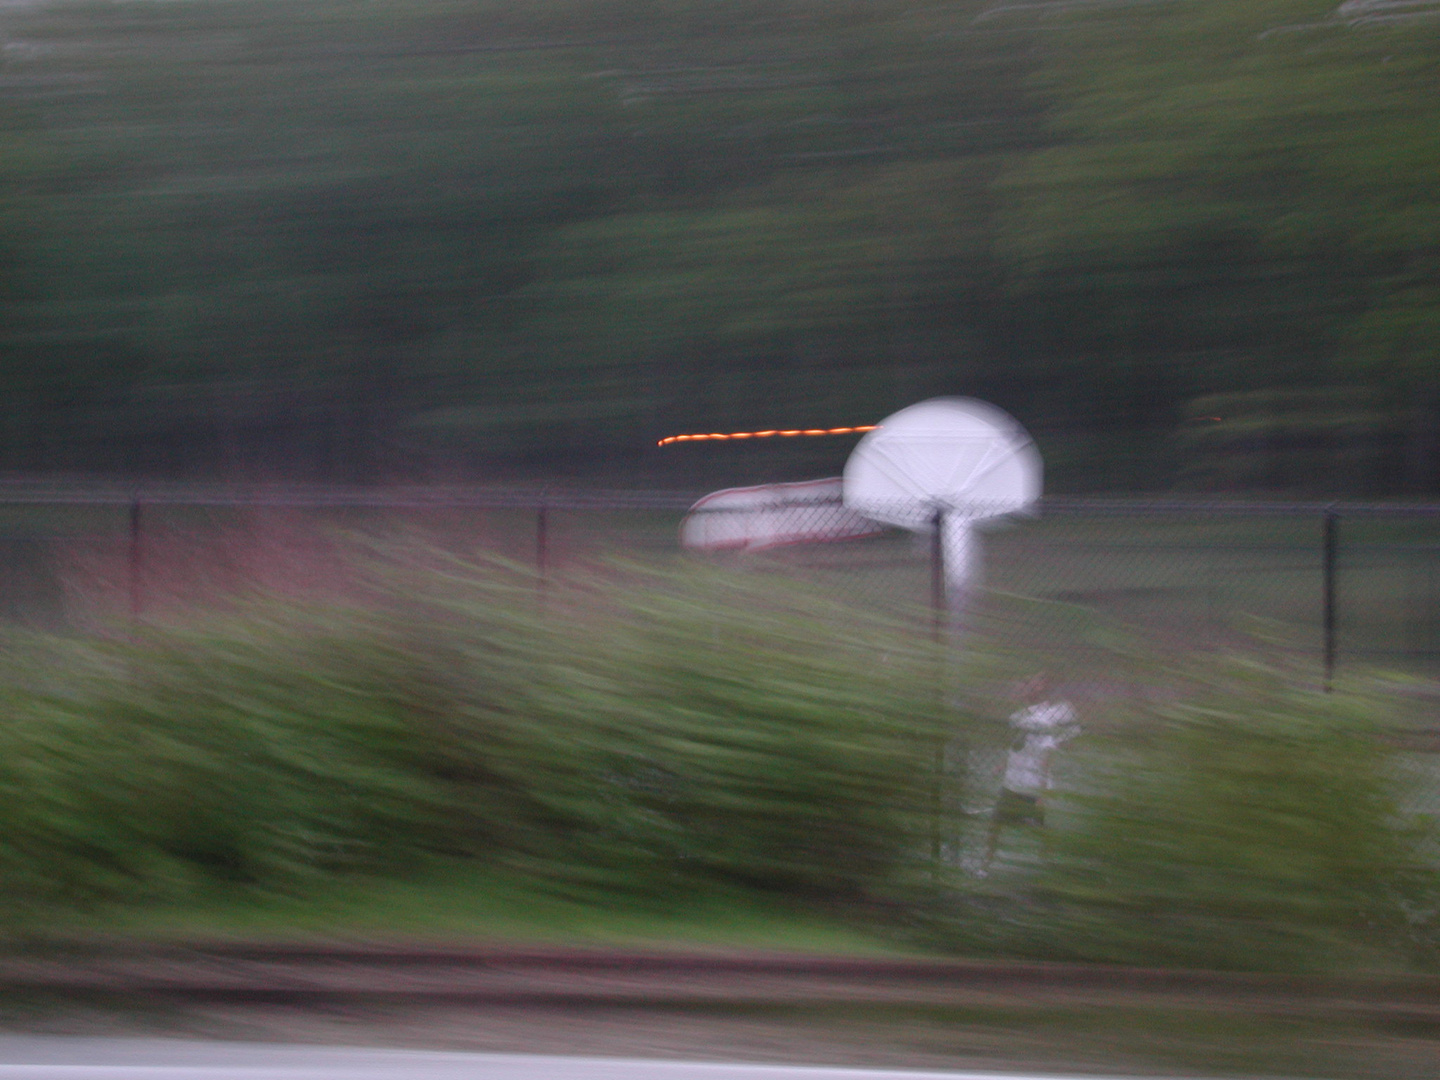 Commute #16 (basketball)